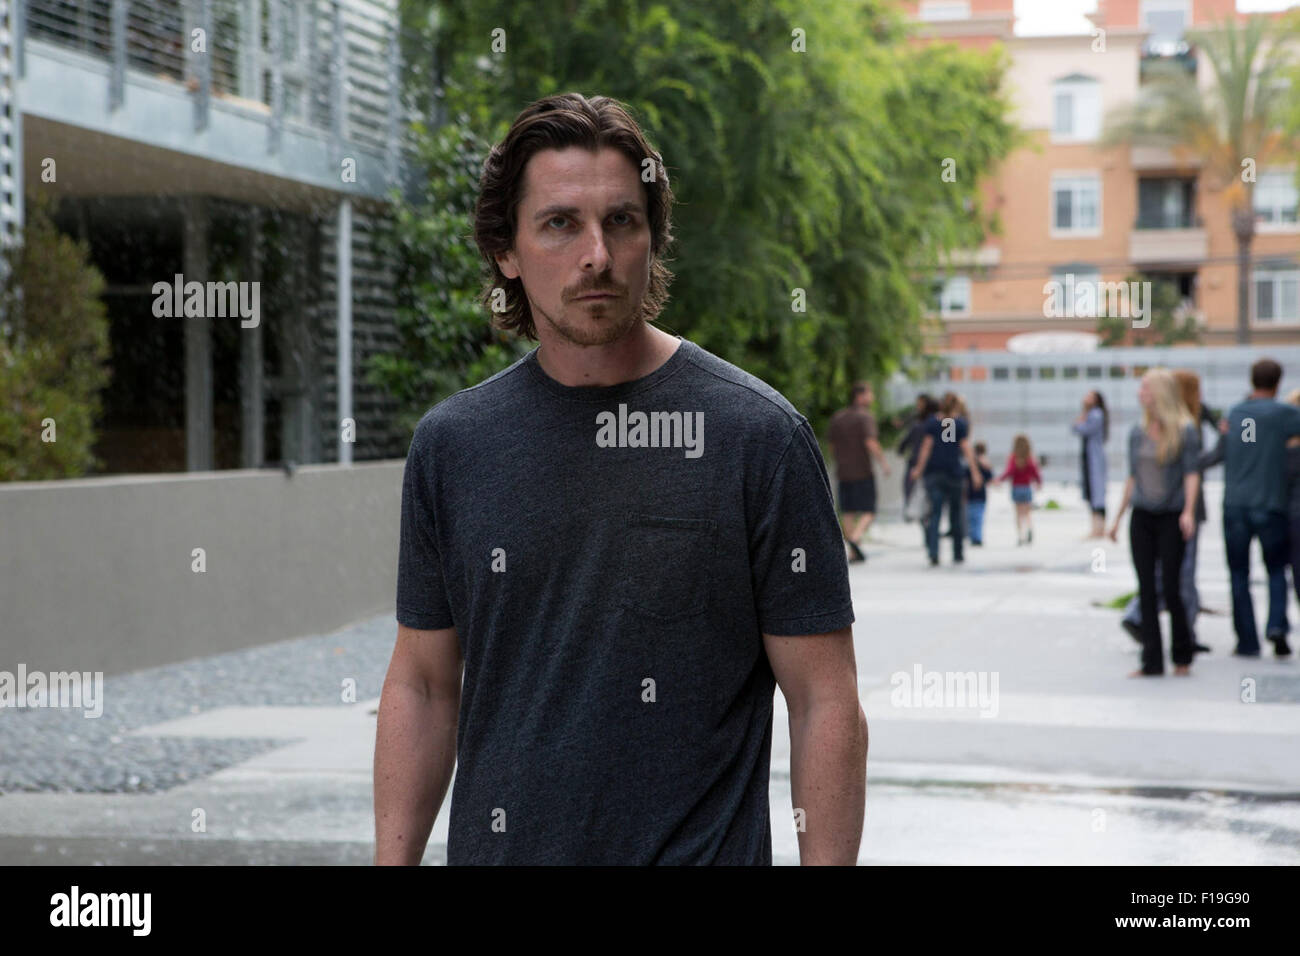 Knight Of Cups Stock Photos & Knight Of Cups Stock Images